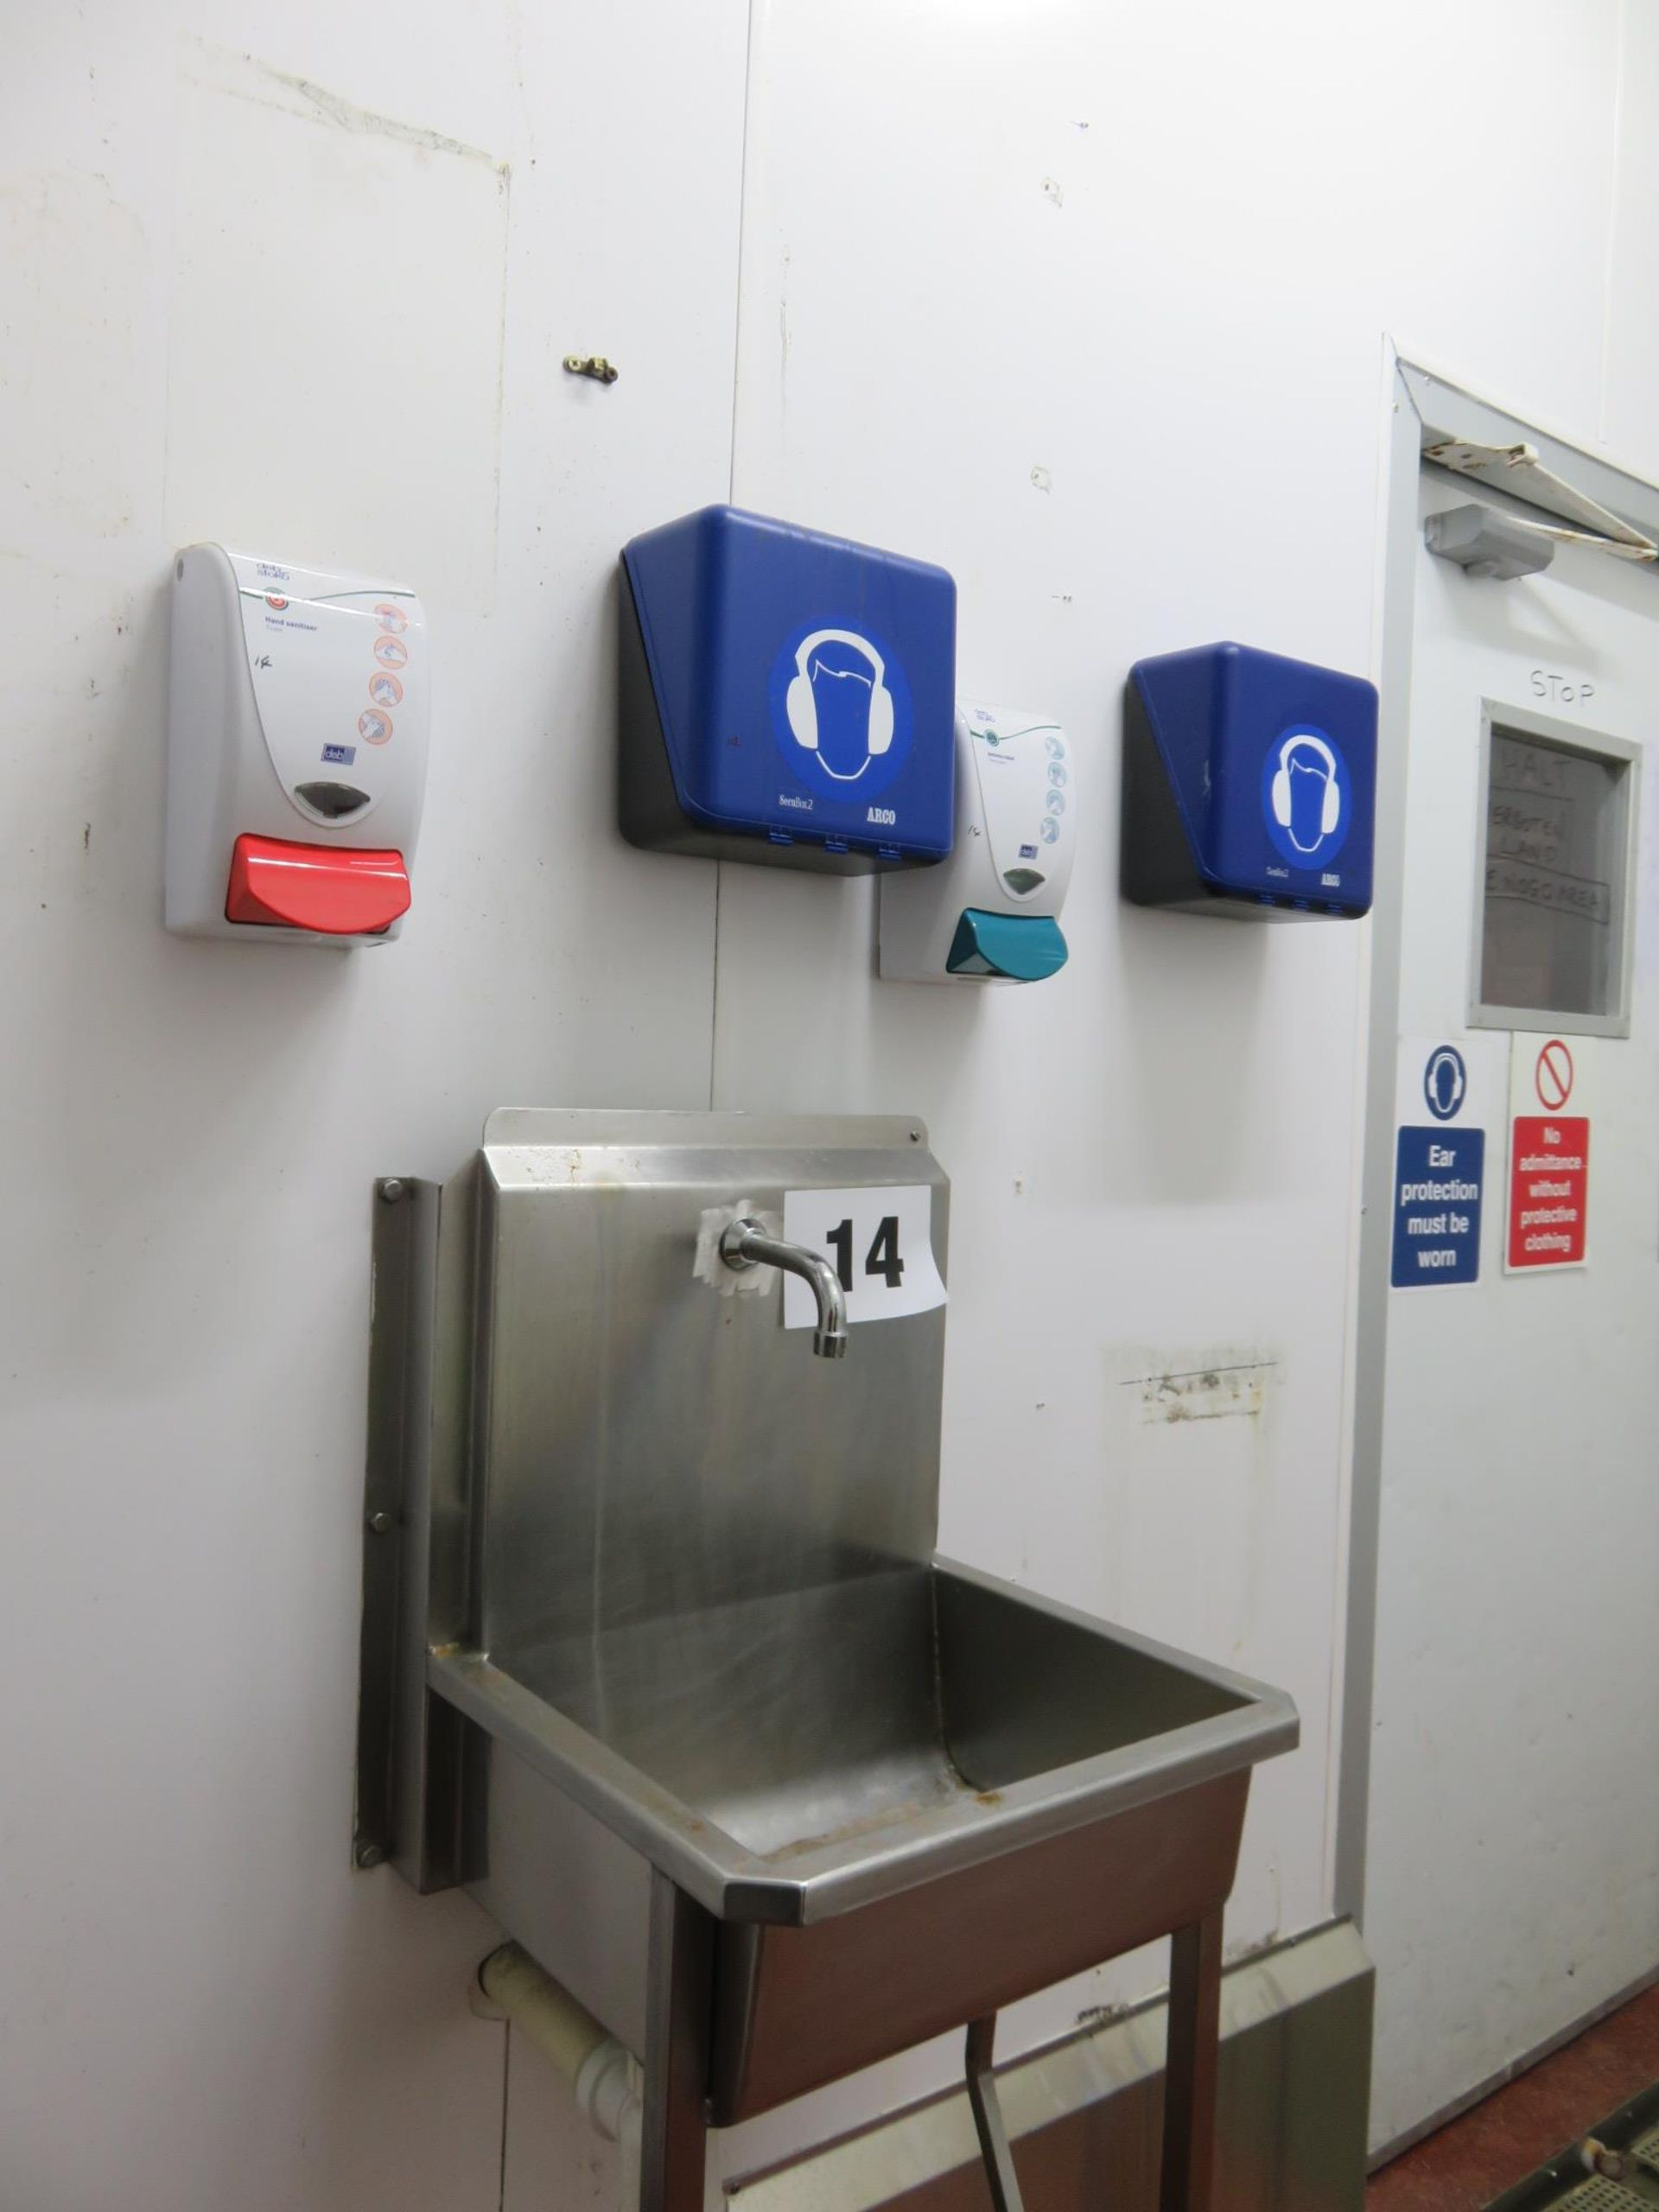 Lot 14 - S/s Sink knee operated; 2 x Secure Box for head phones wall mounted; 2 x Sanitising Un. Lift out £30